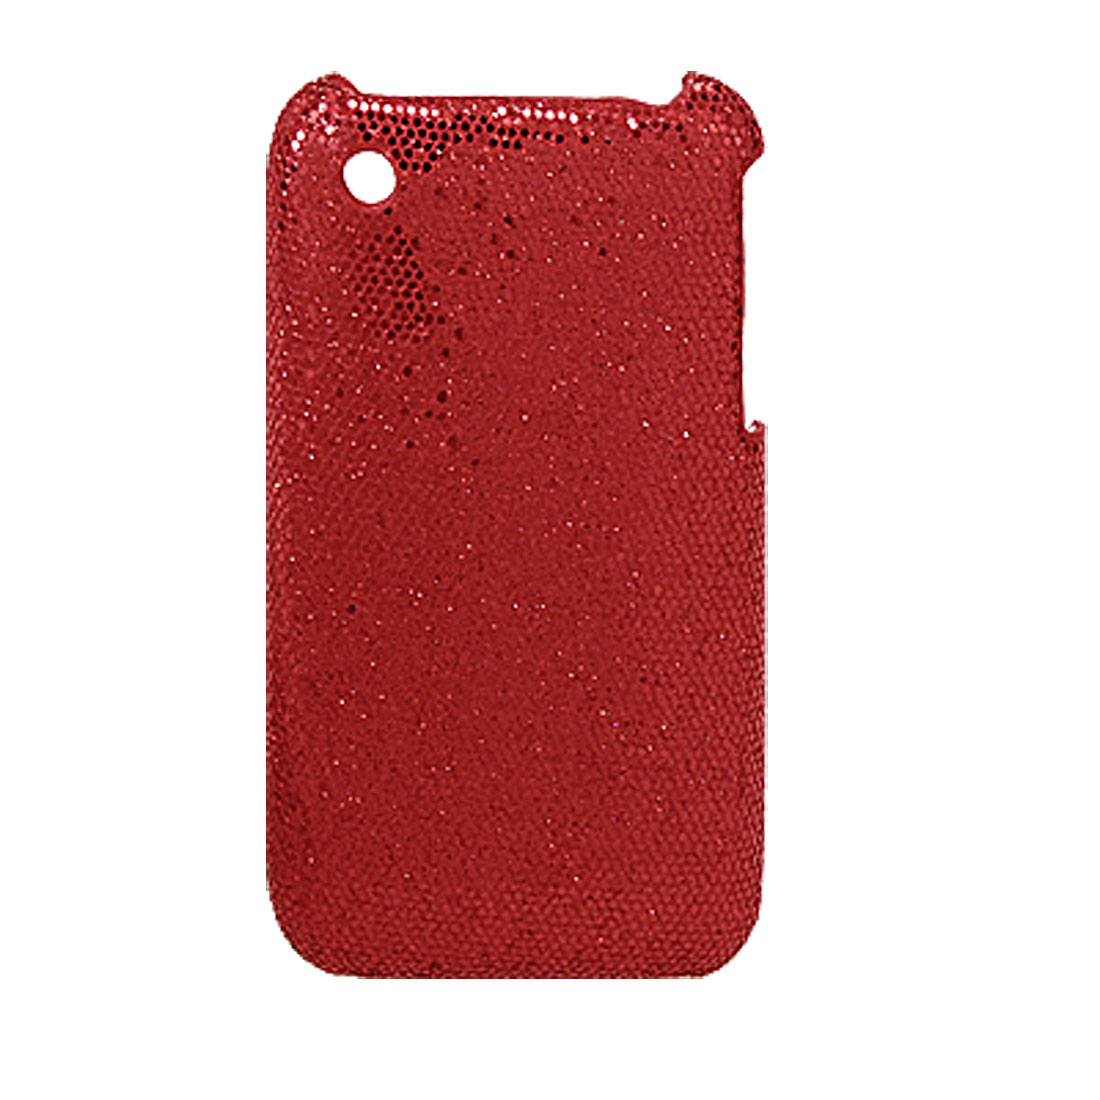 Hard Plastic Glittery Back Case Cover for iPhone 3G Red